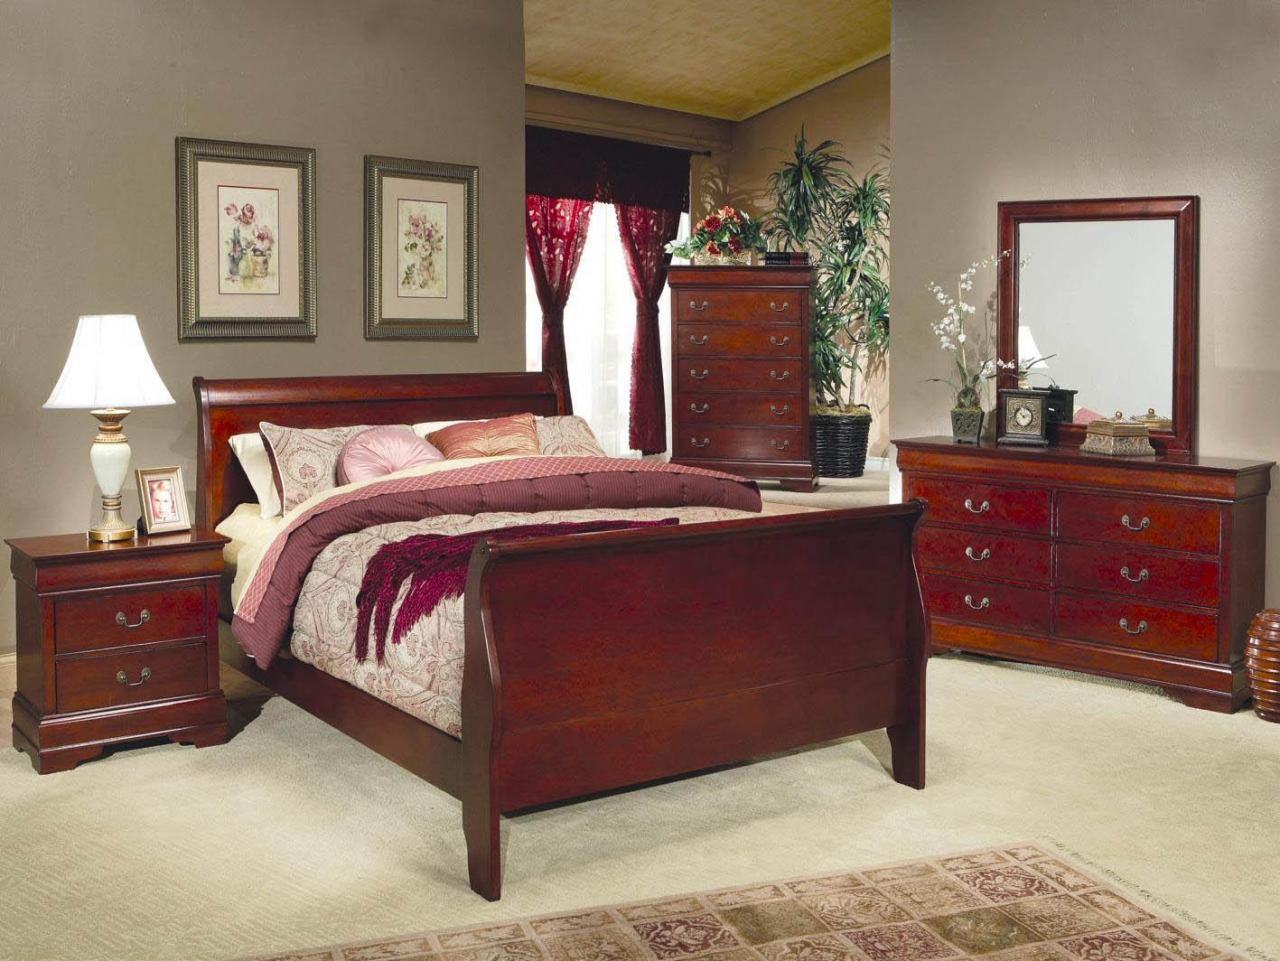 Excellent Sleigh Bedroom Sets Painting